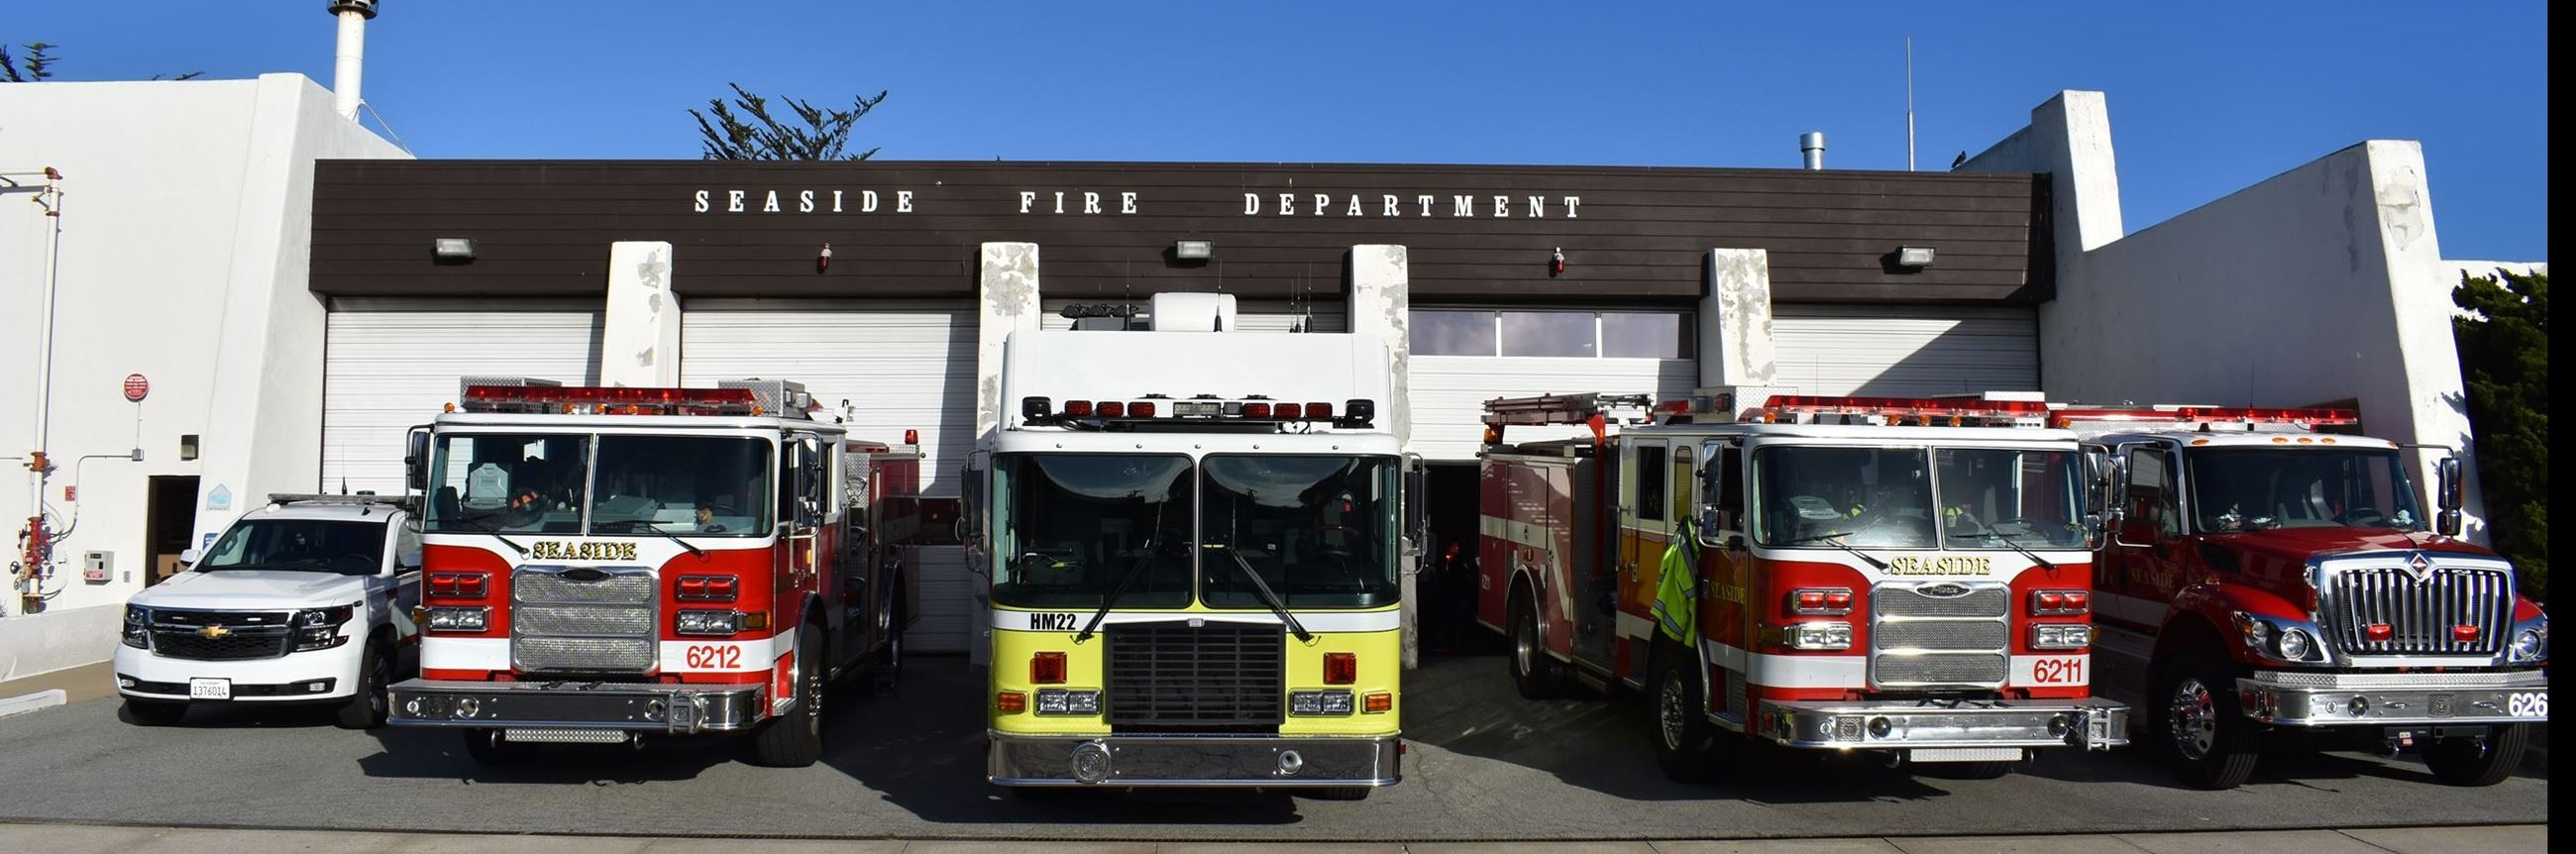 all fire department vehicles